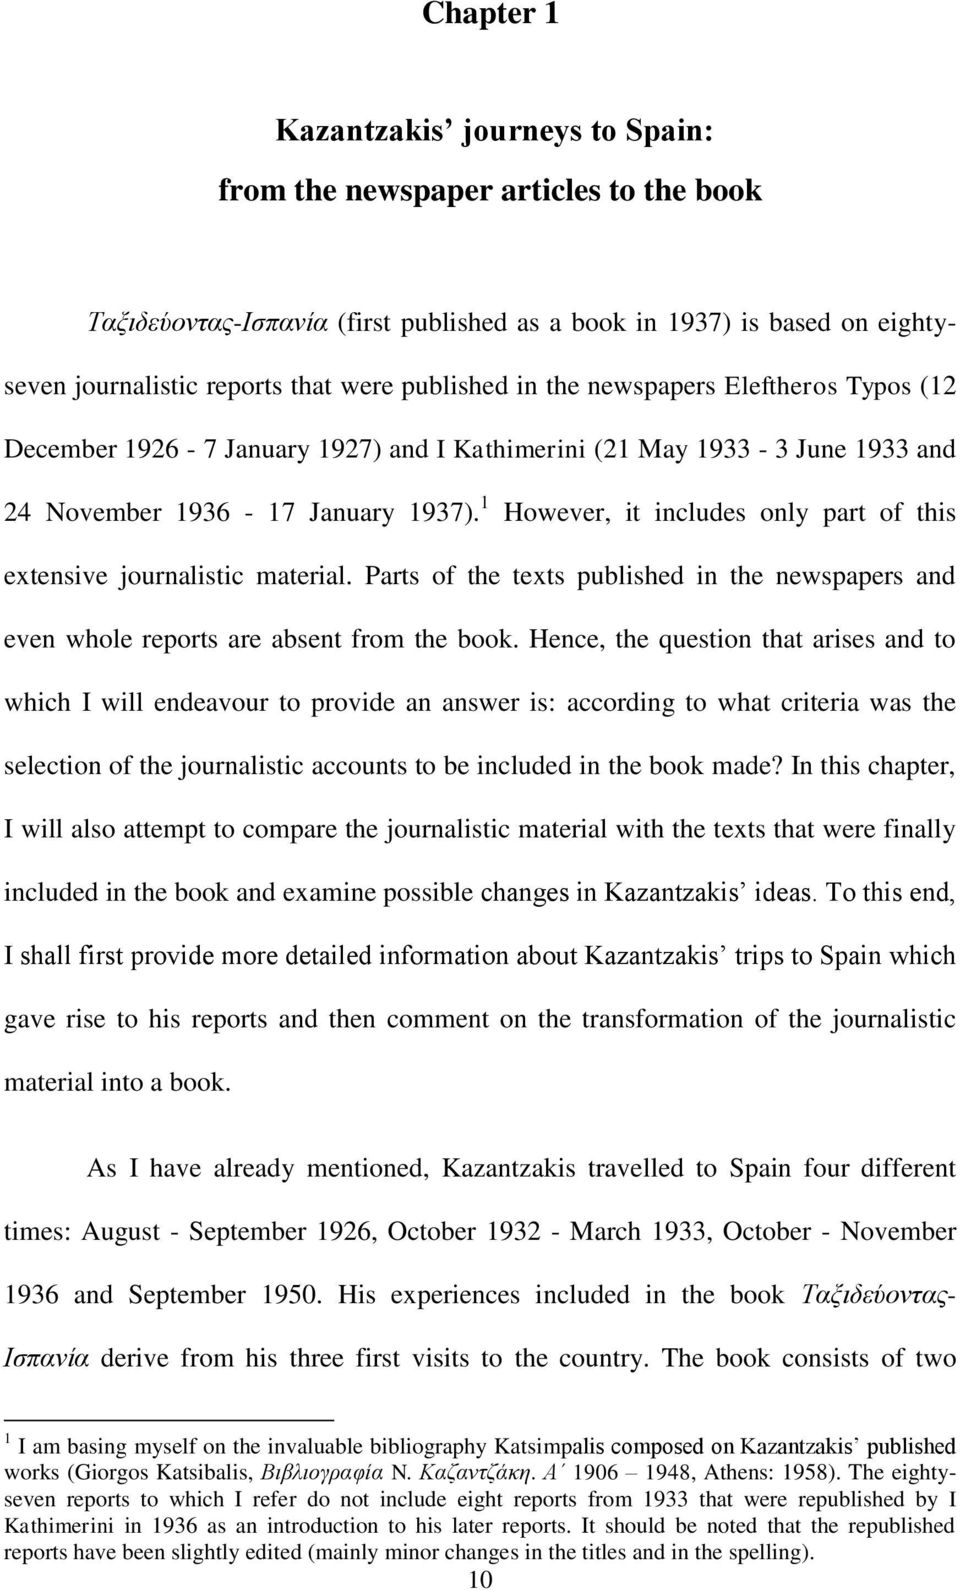 1 However, it includes only part of this extensive journalistic material. Parts of the texts published in the newspapers and even whole reports are absent from the book.